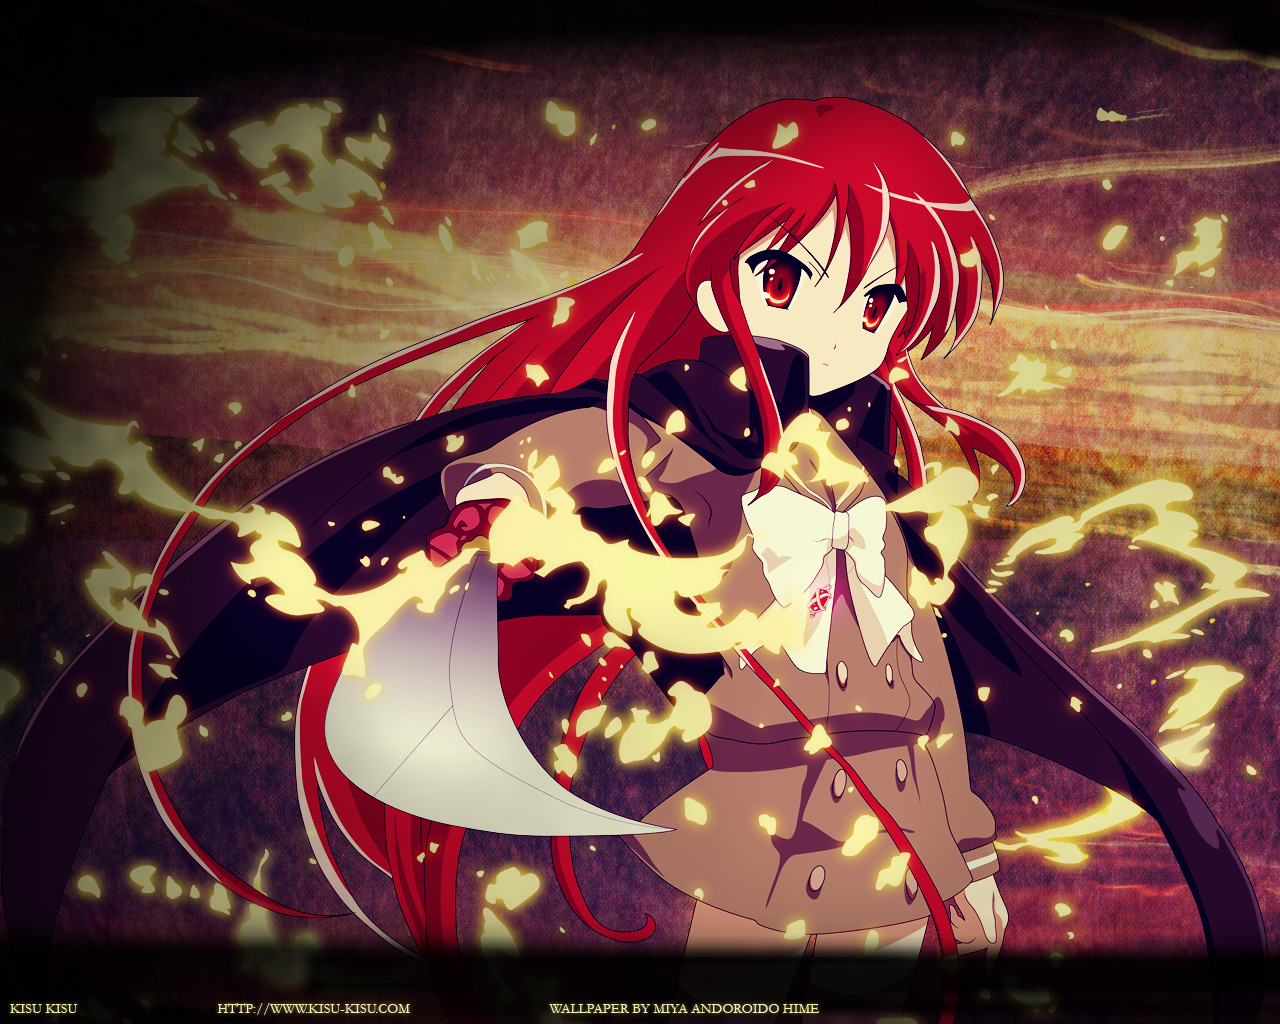 Shakugan no shana trailer latino dating. Shakugan no shana trailer latino dating.